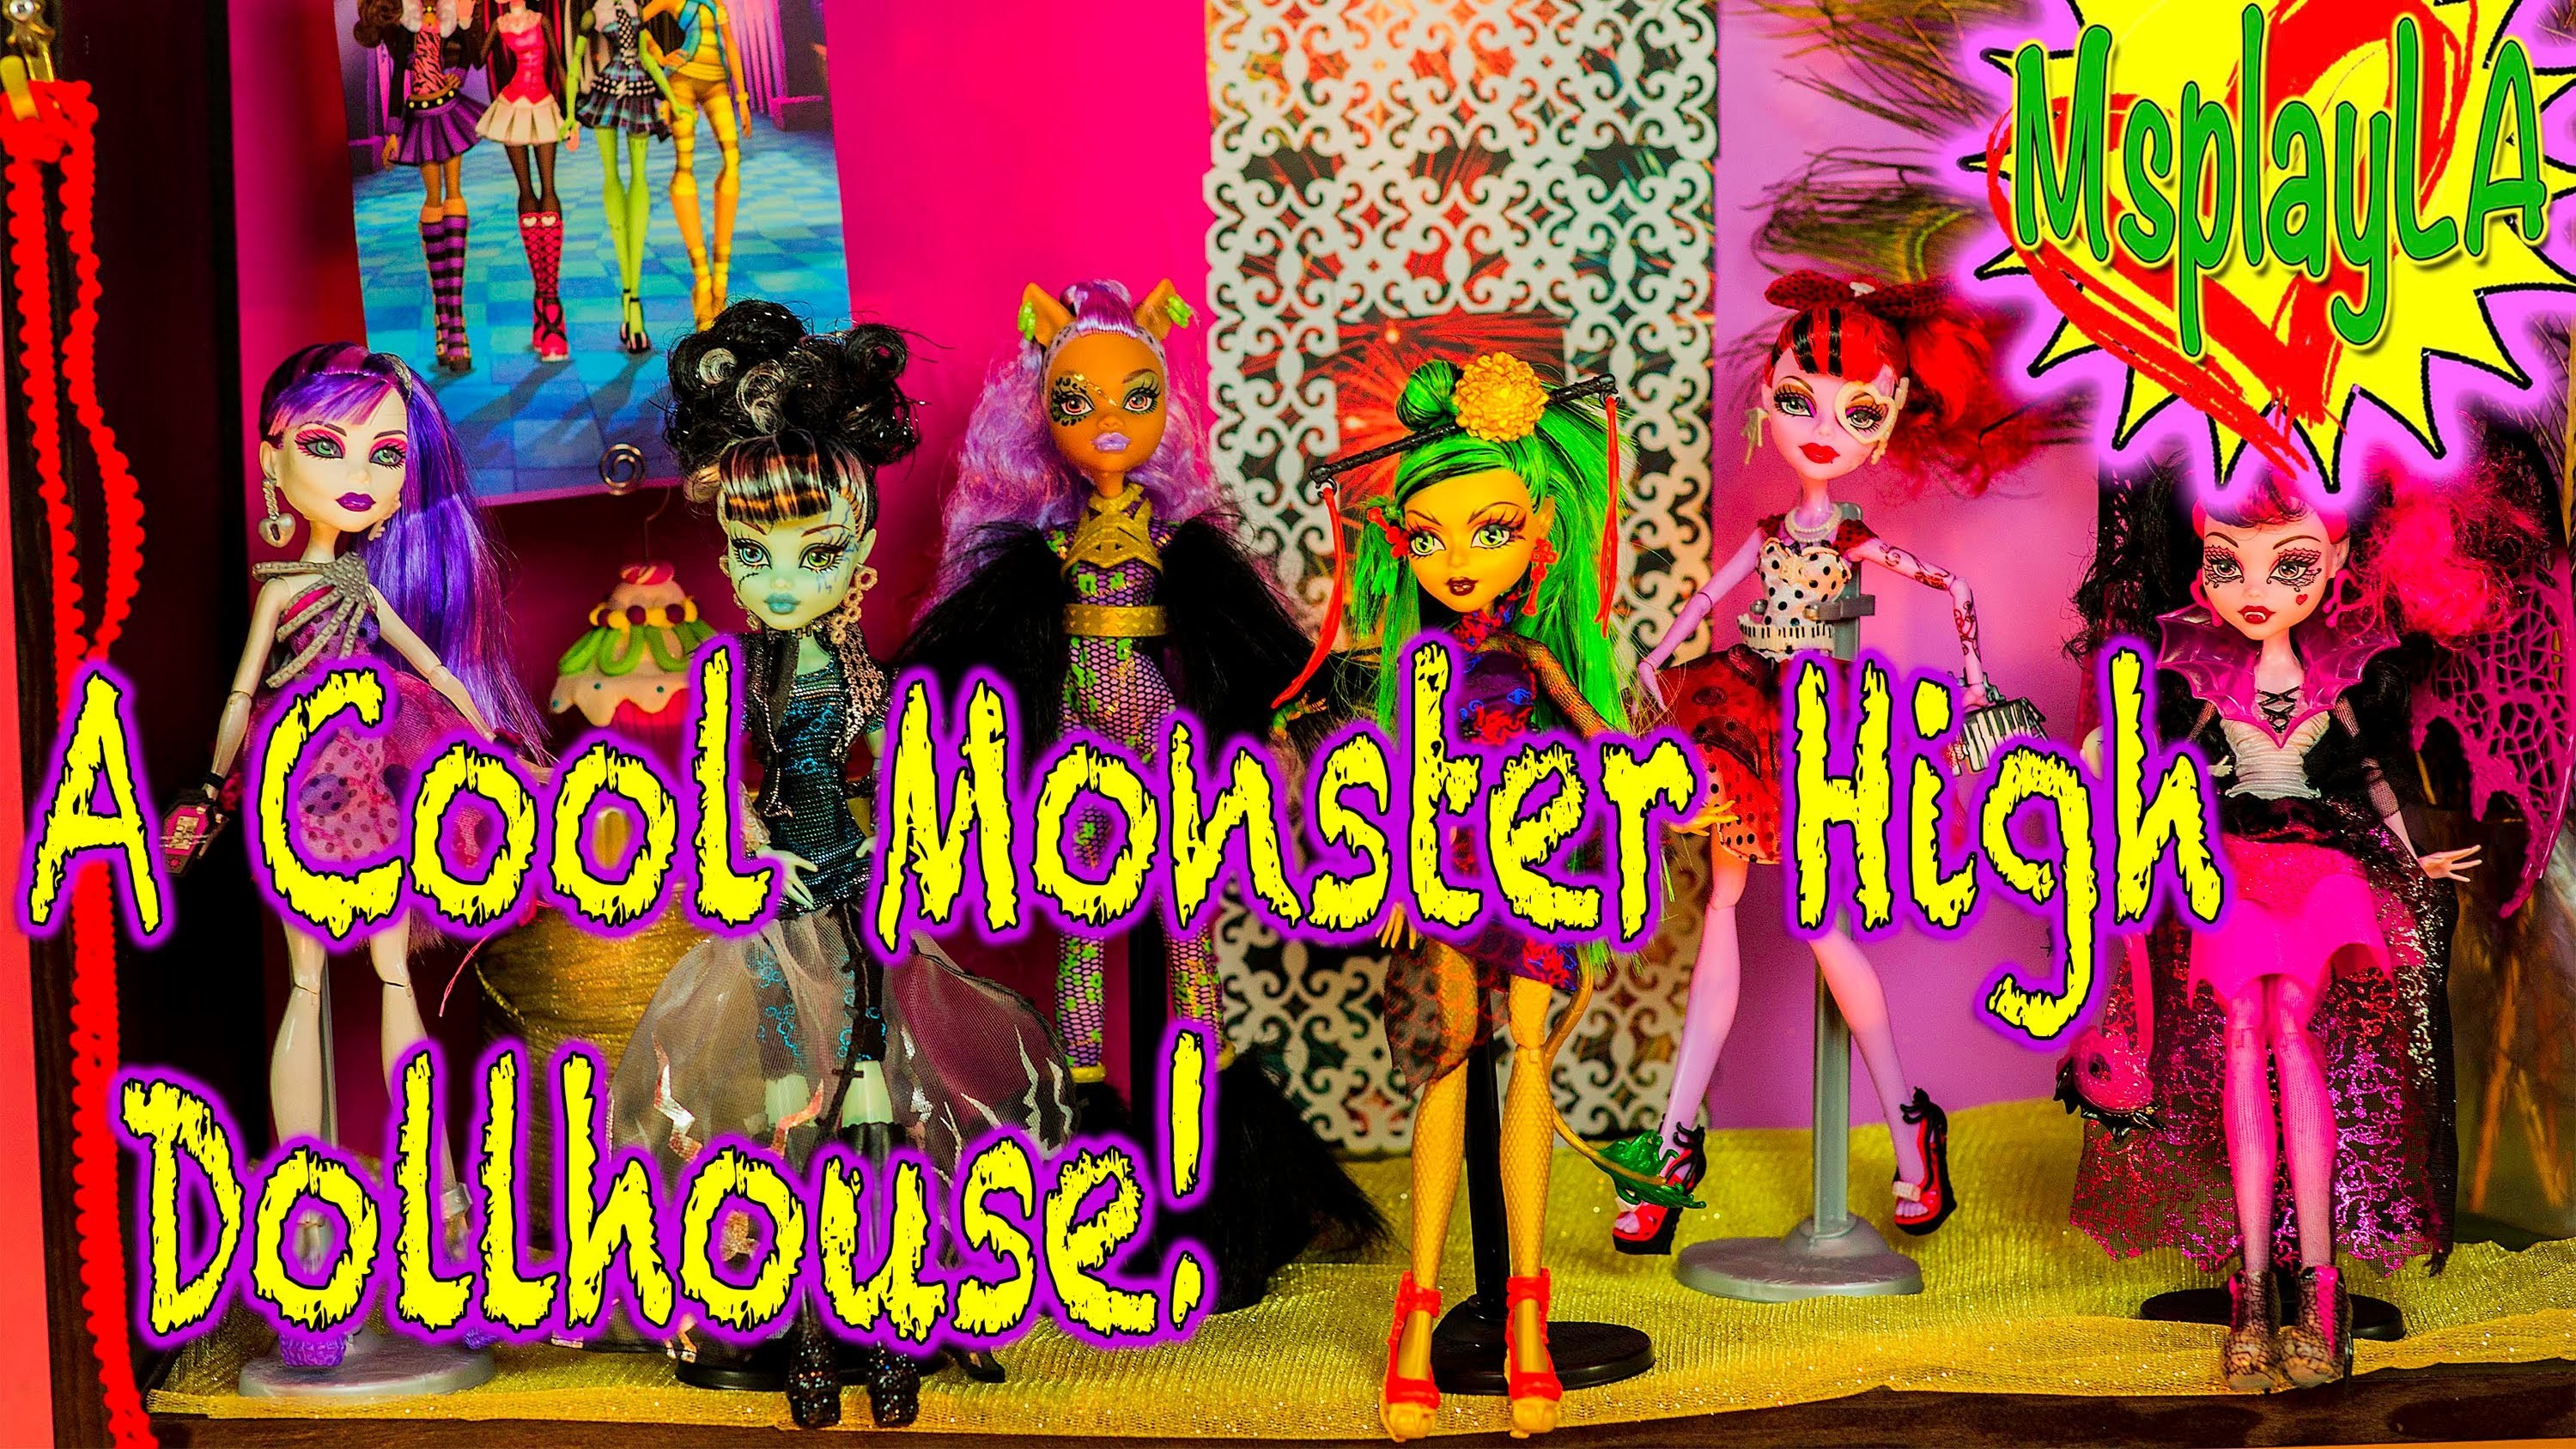 Monster High Dolls - Making a Cool Doll House for Our Monster High Dolls on MsPlayLA